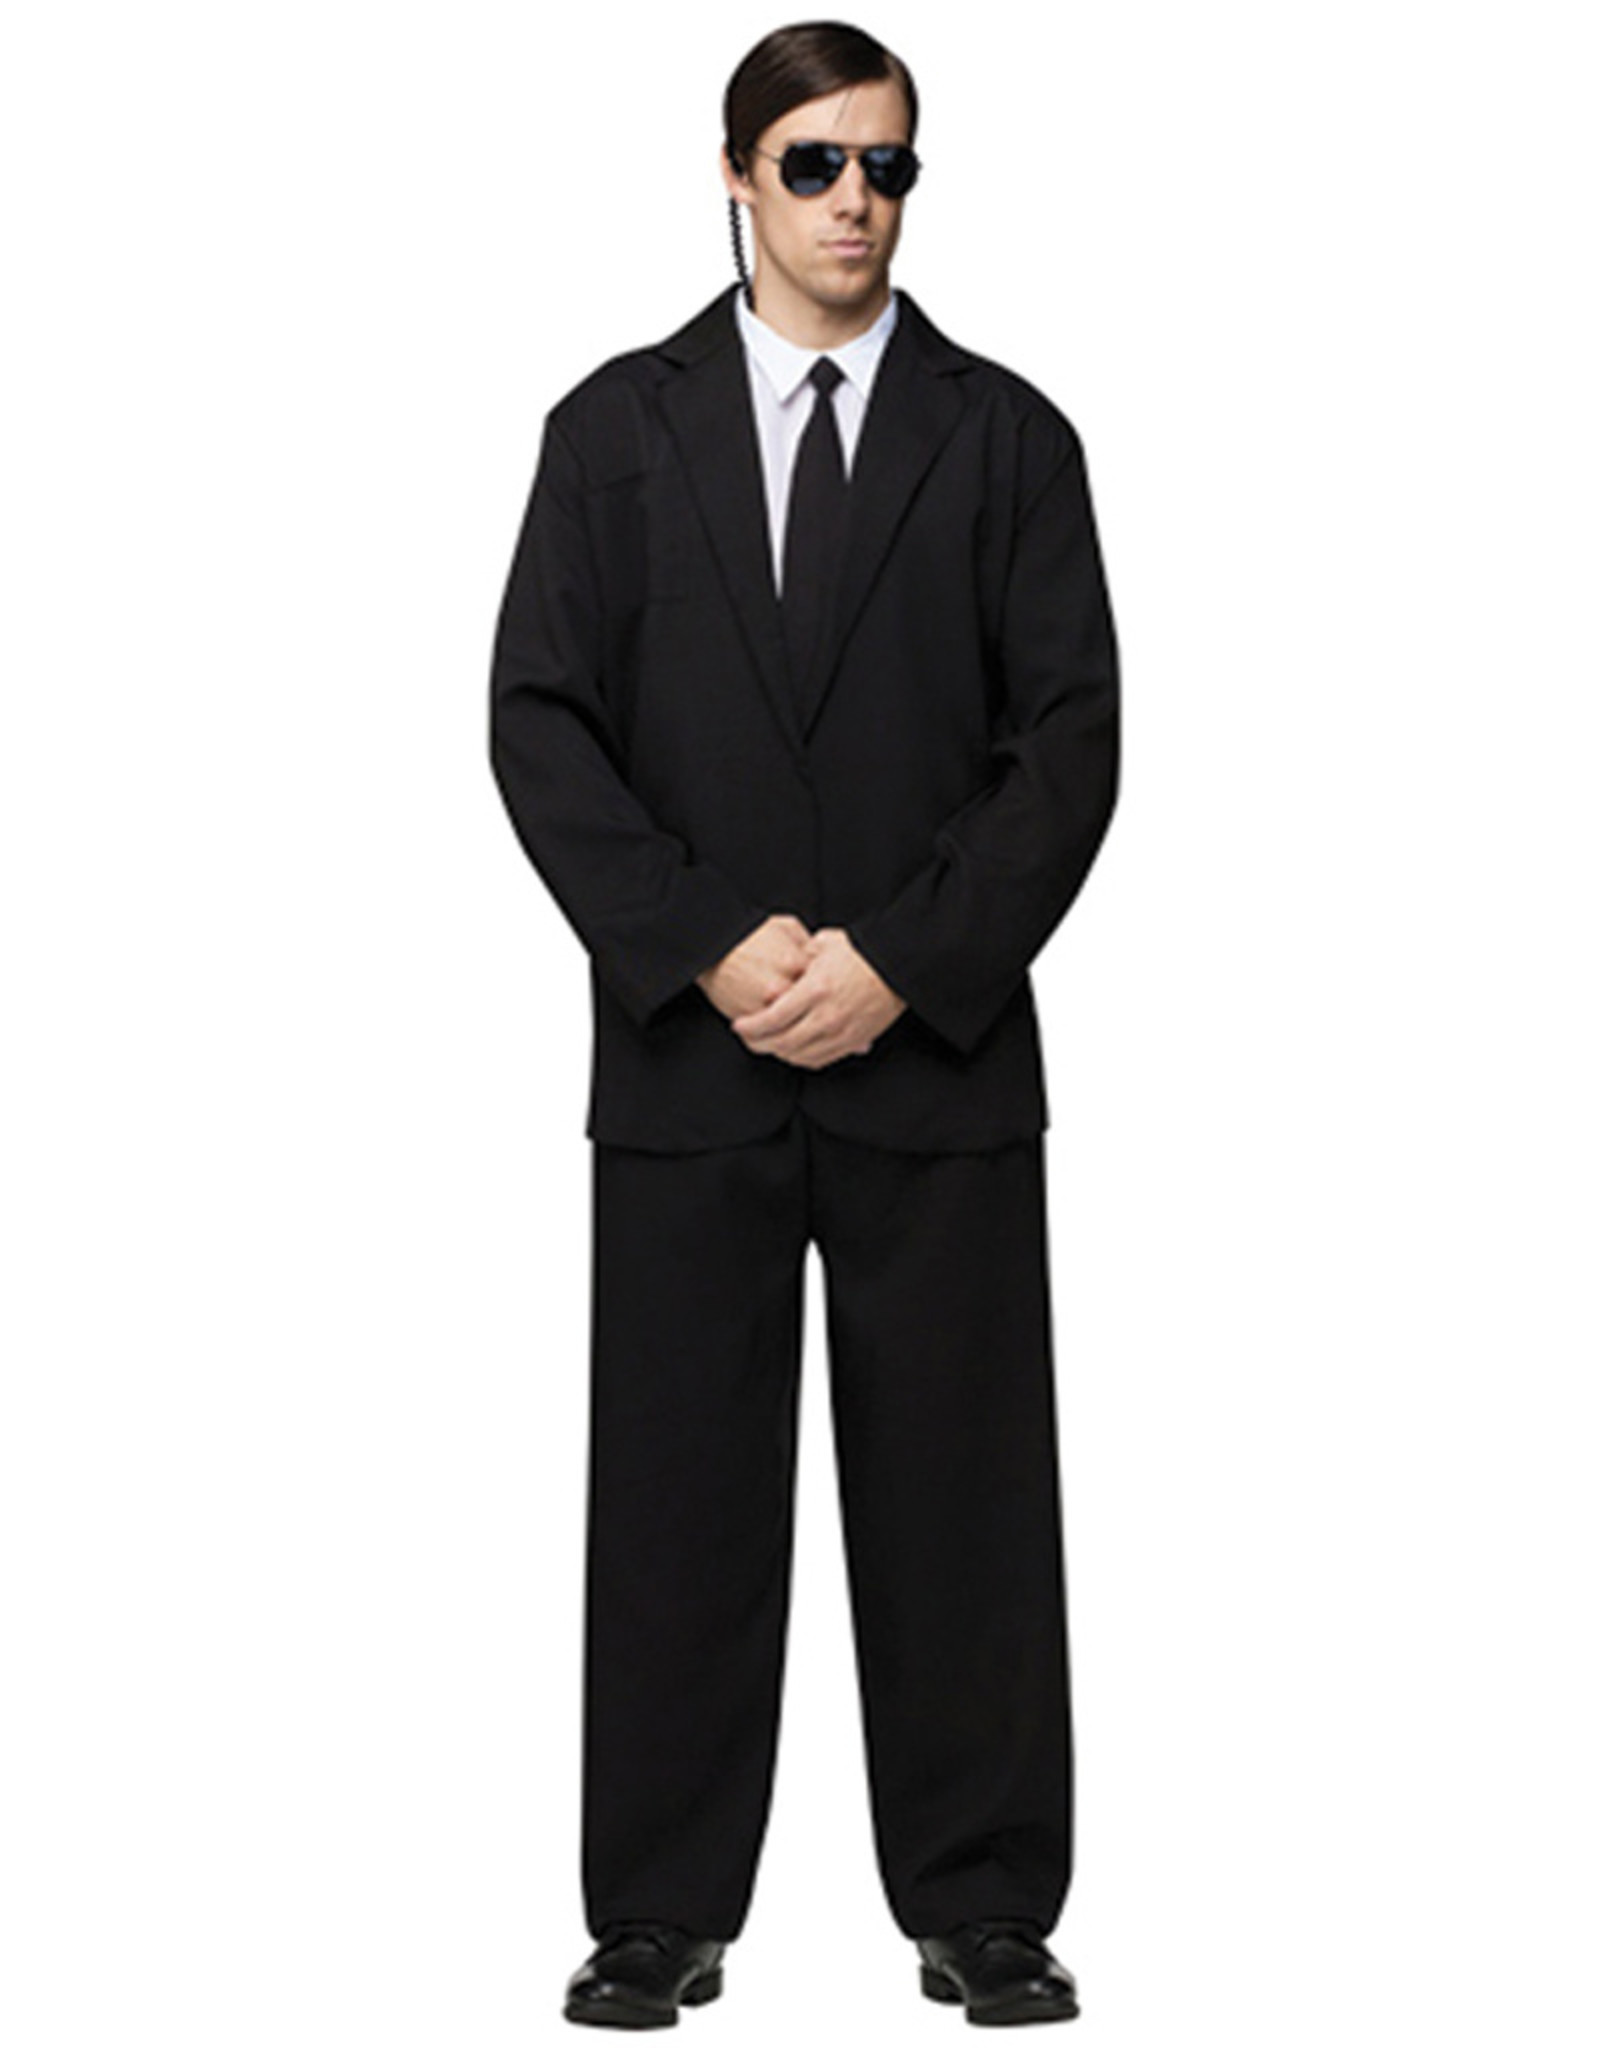 Black Suit Costume - Men's